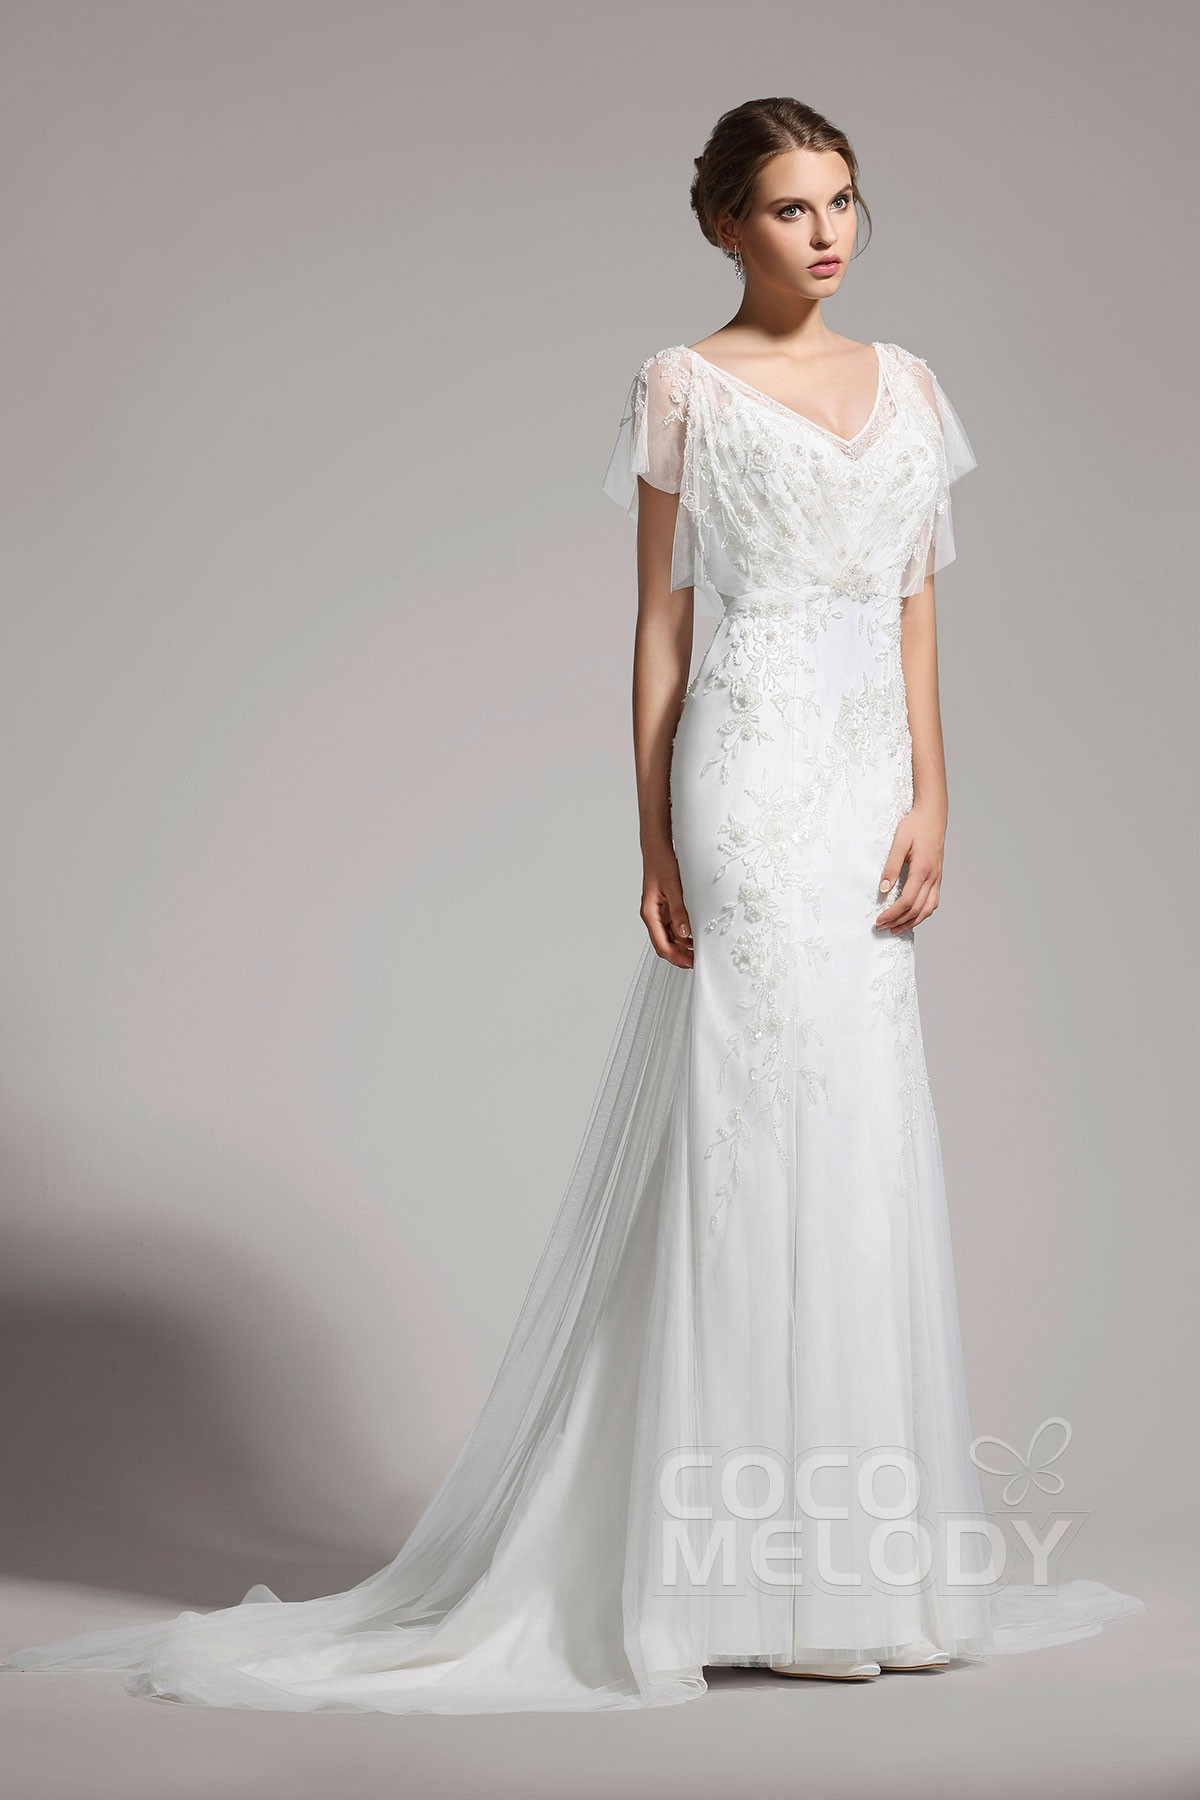 Delicate Trumpet Mermaid V Neck Tulle Ivory Cap Sleeve Wedding Dress With Beading Awvt15001